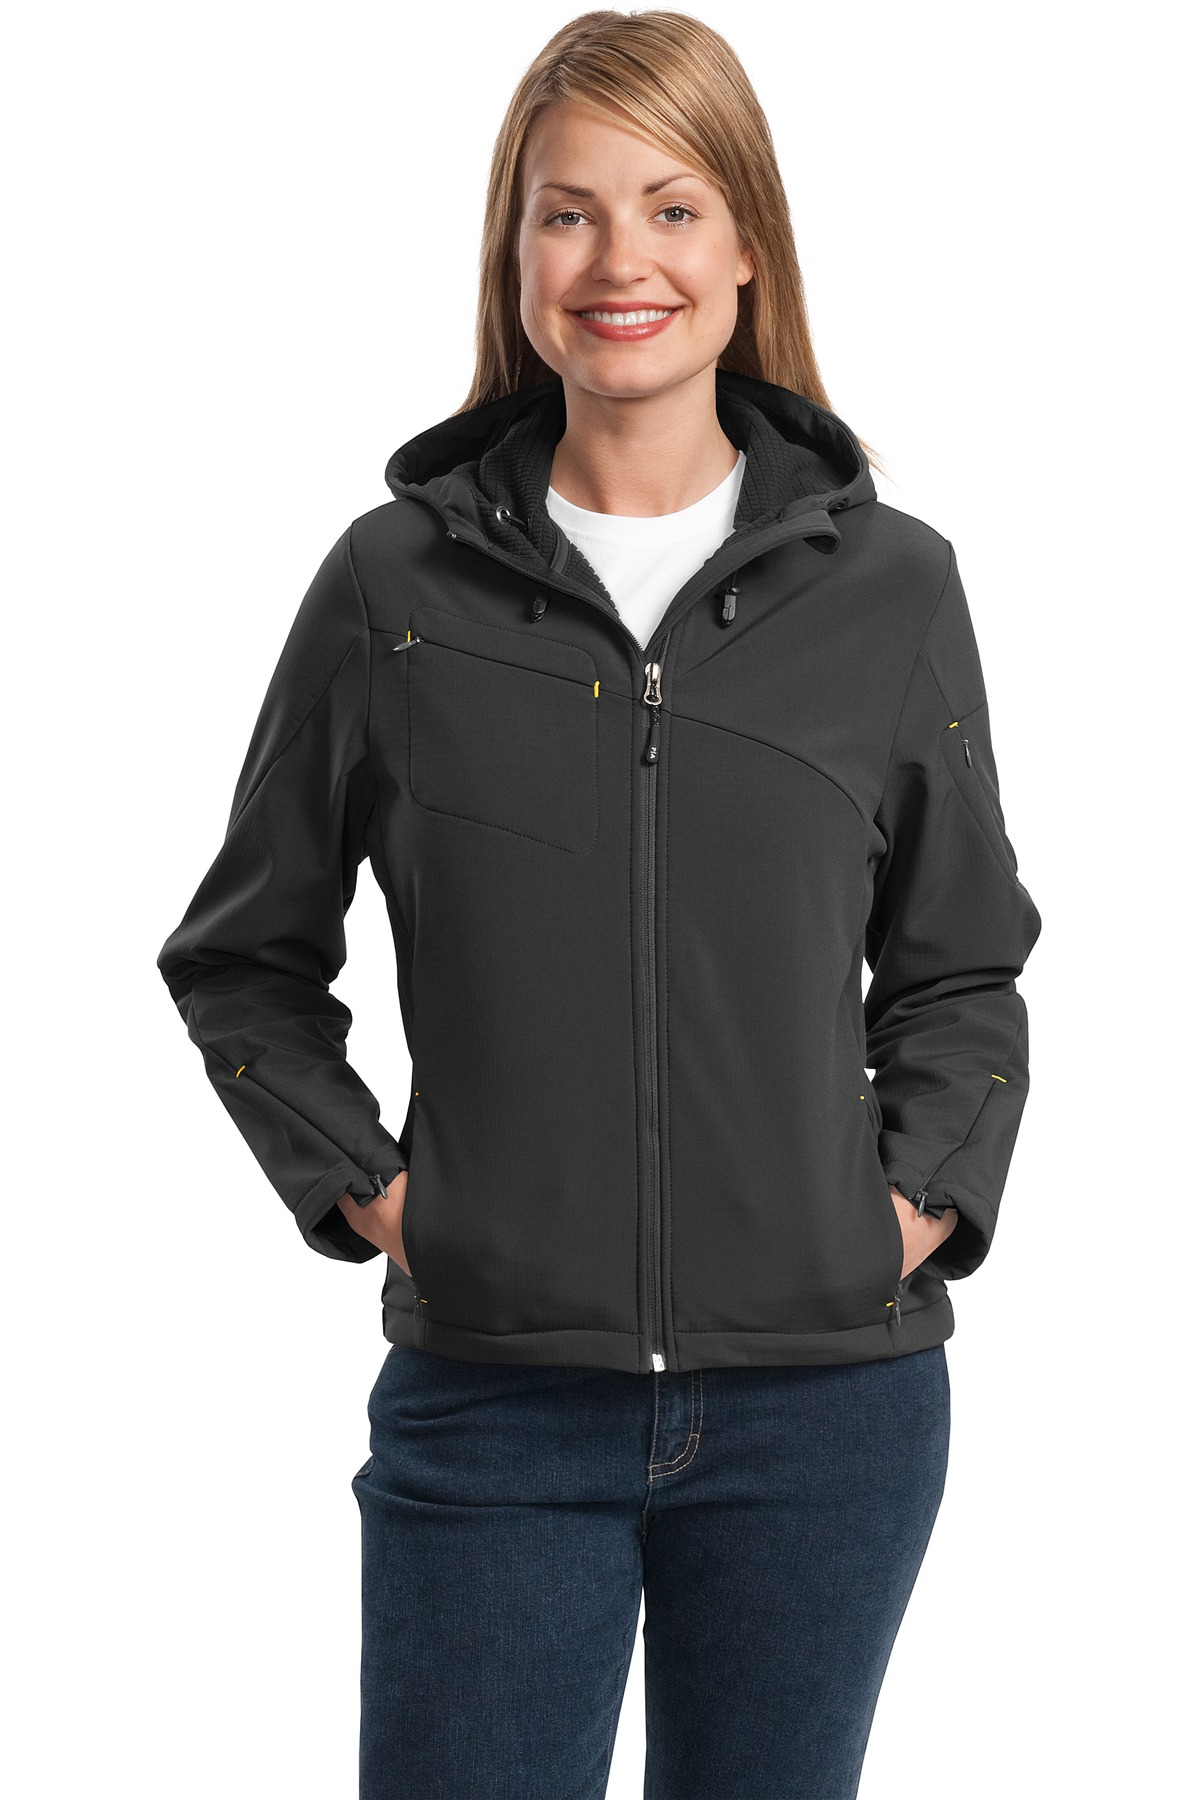 Port Authority ®  Ladies Textured Hooded Soft Shell Jacket. L706 - Charcoal/ Lemon Yellow